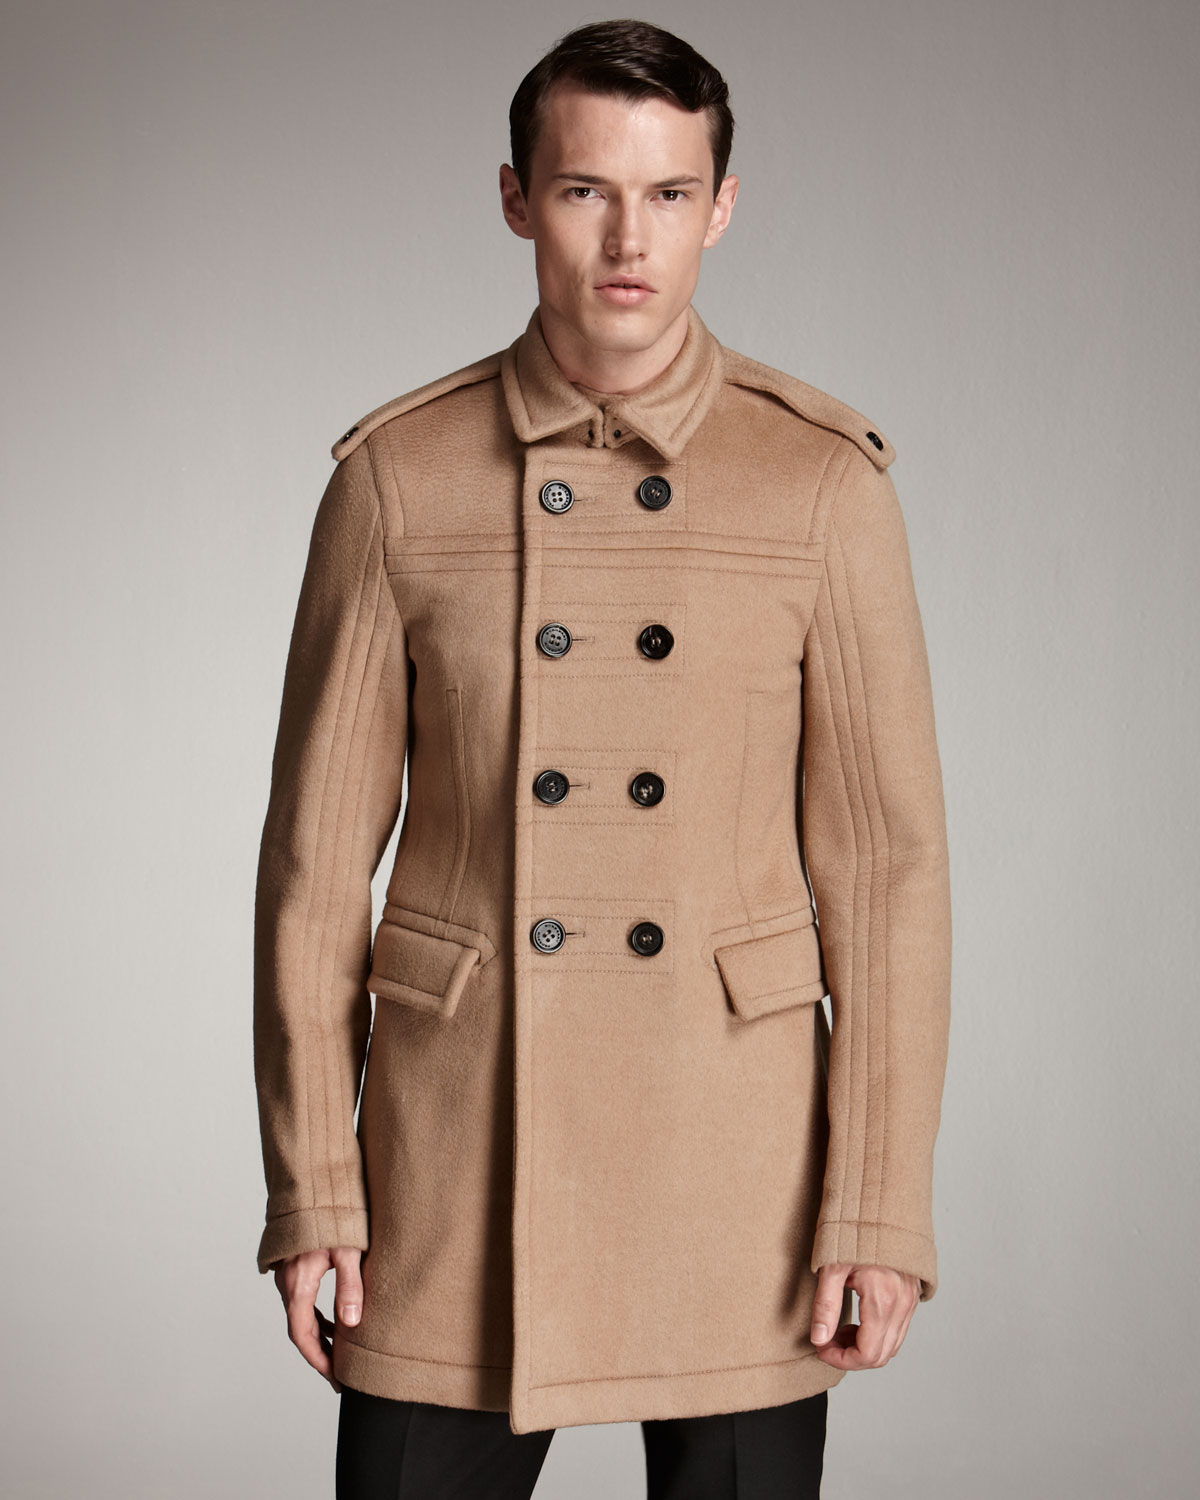 Burberry prorsum Double-breasted Car Coat in Brown for Men | Lyst